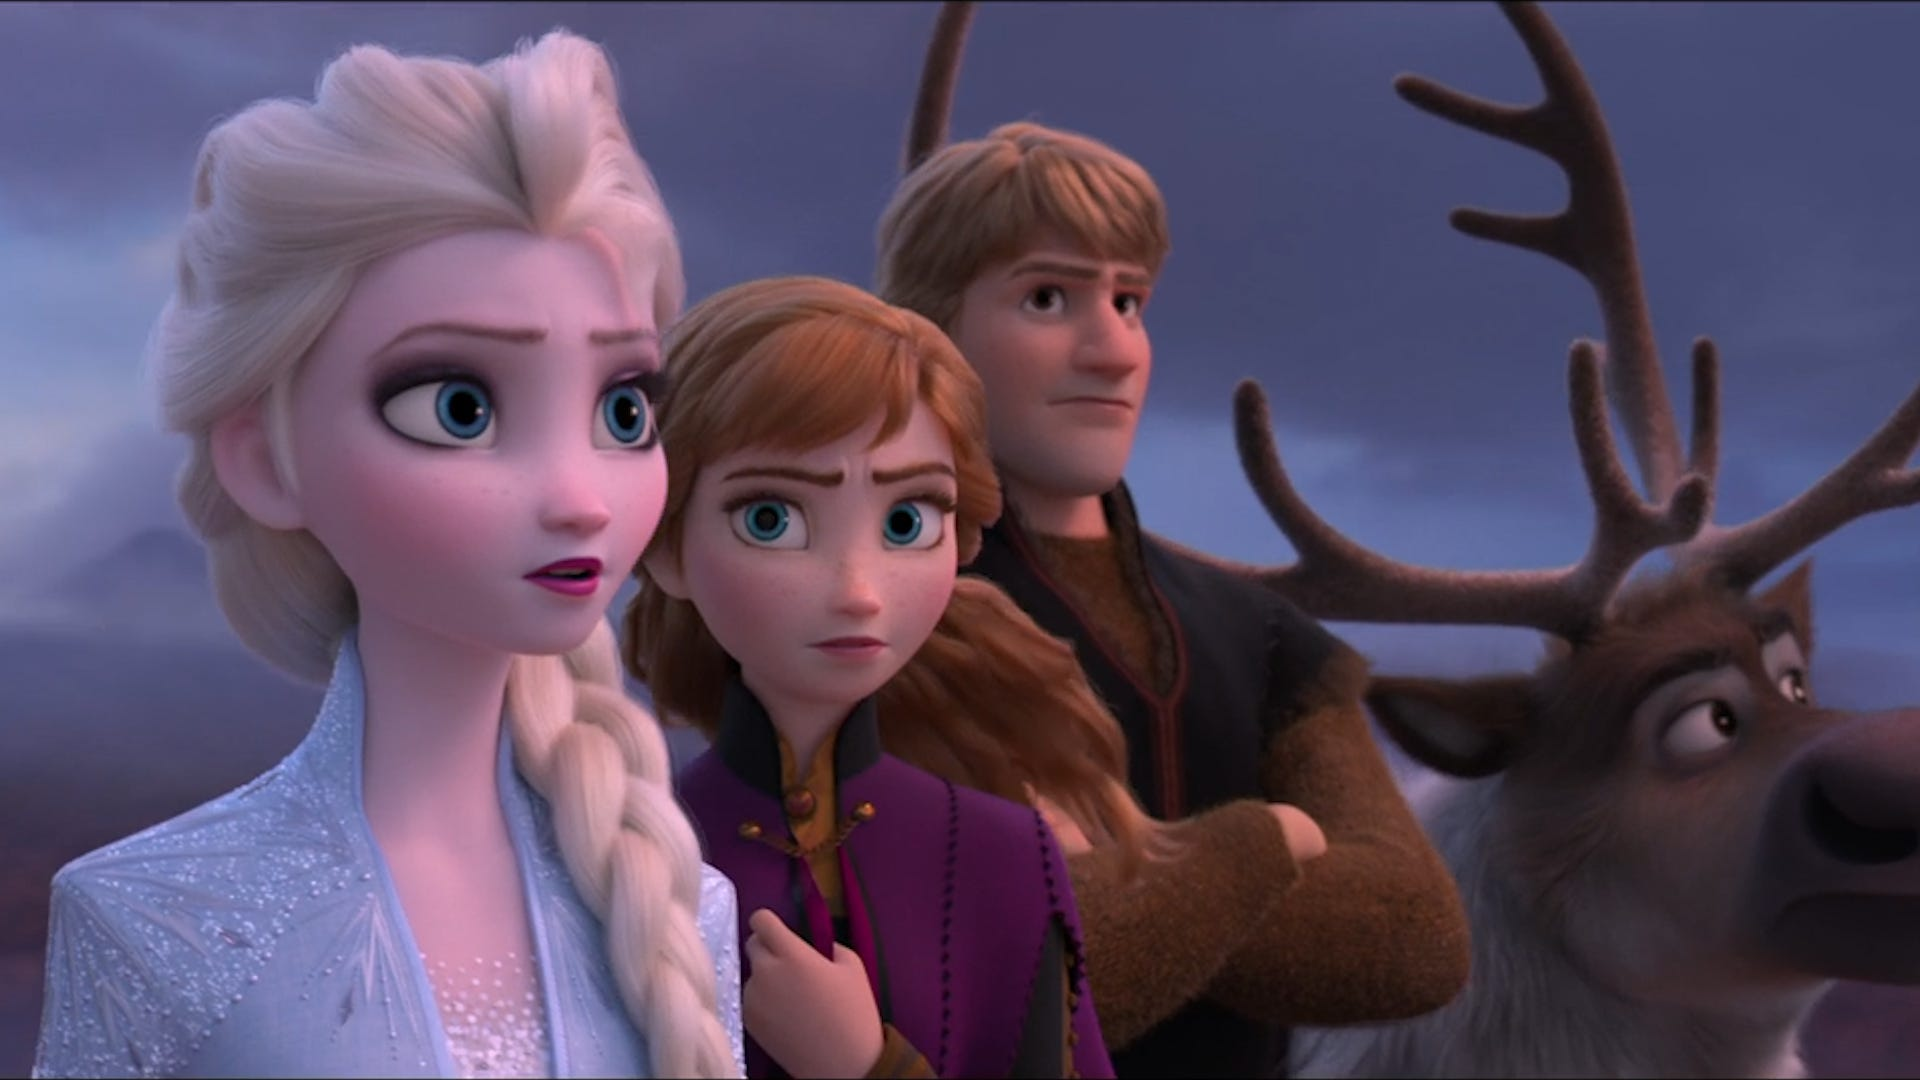 Disney unveils first trailer for 'Frozen 2' with Anna, Elsa and fierce new outfits